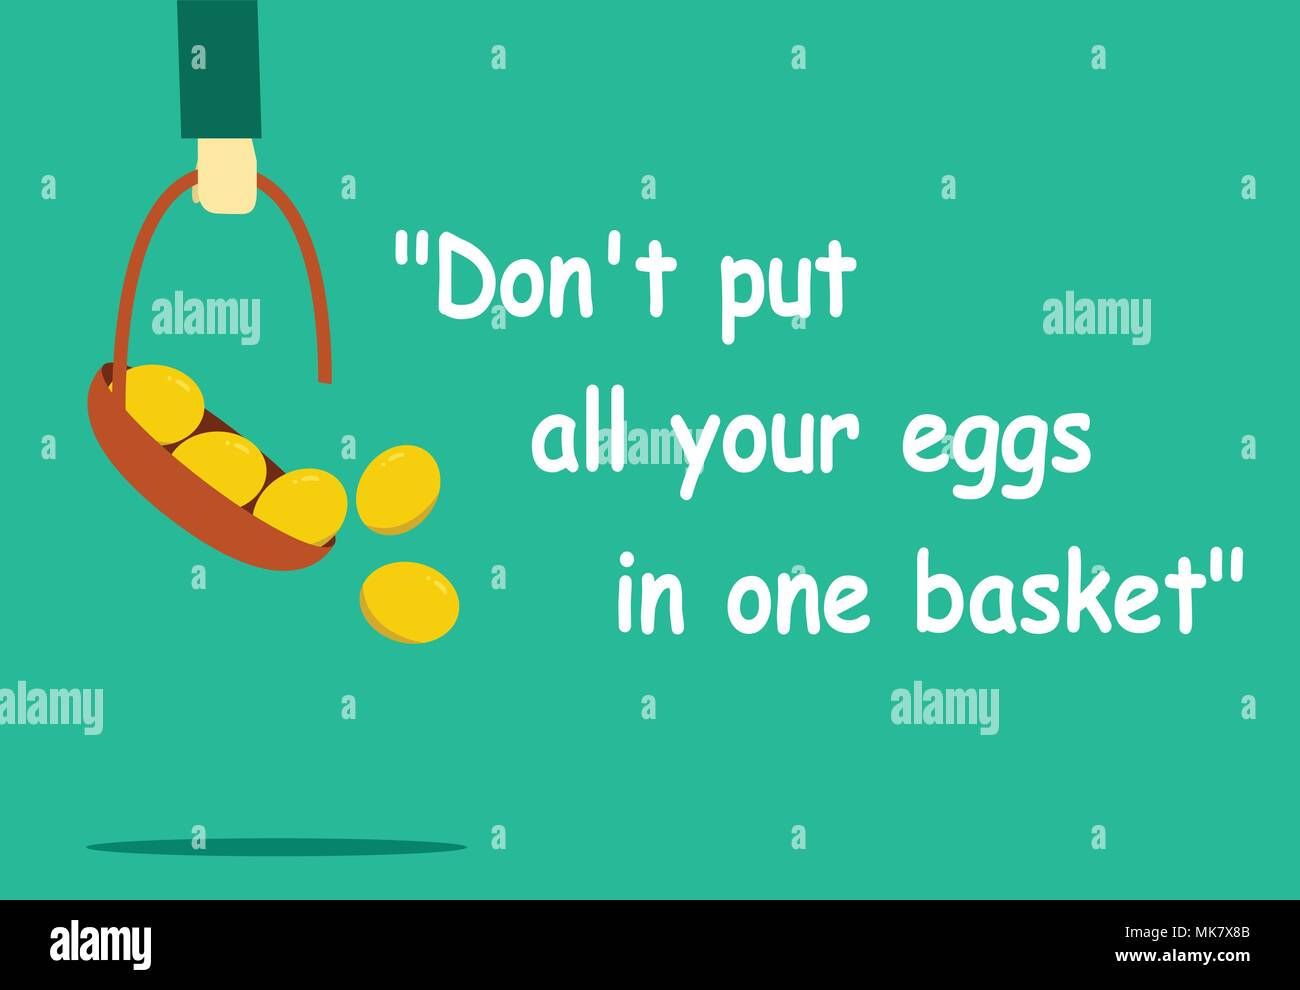 Dating eggs in one basket